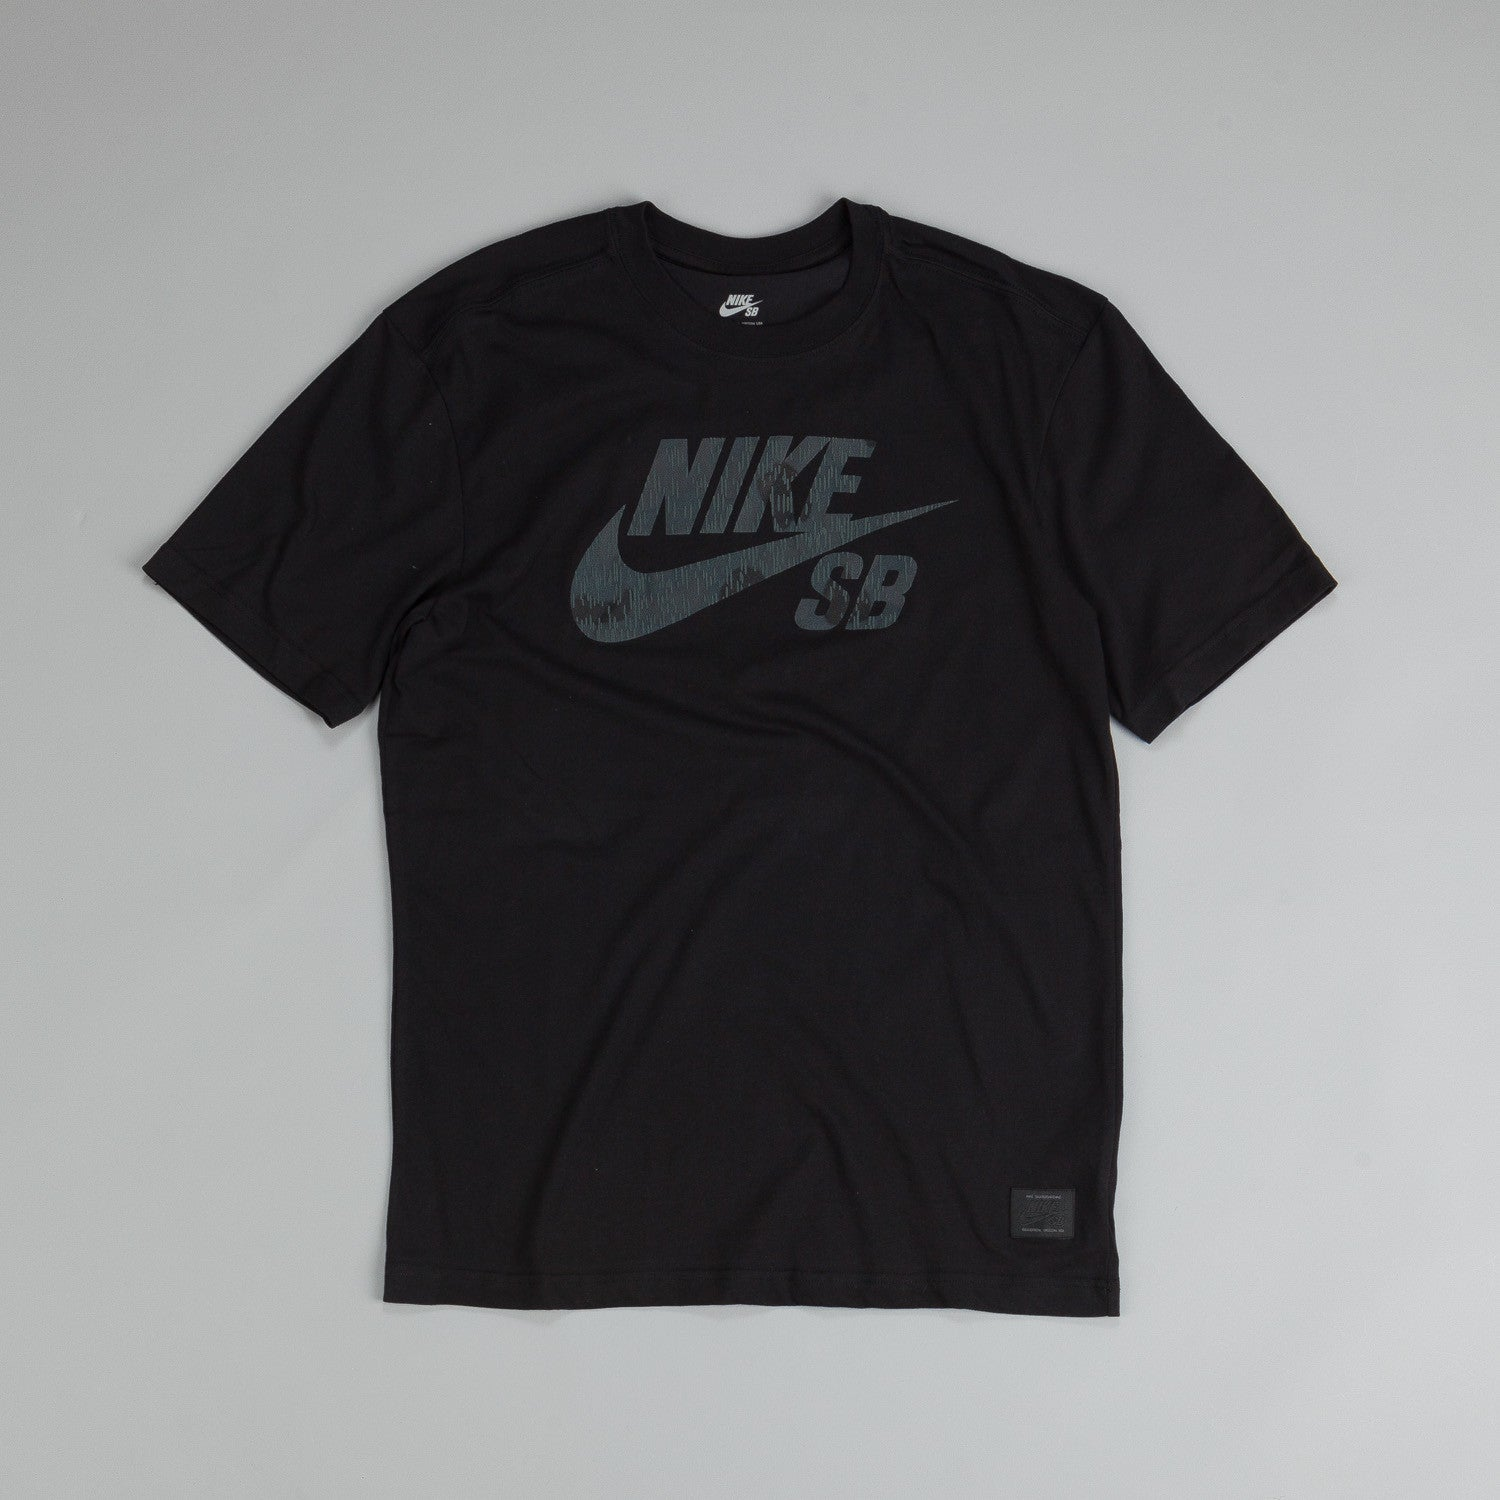 Nike SB Dri Fit Icon Marsh T Shirt Black / Seaweed